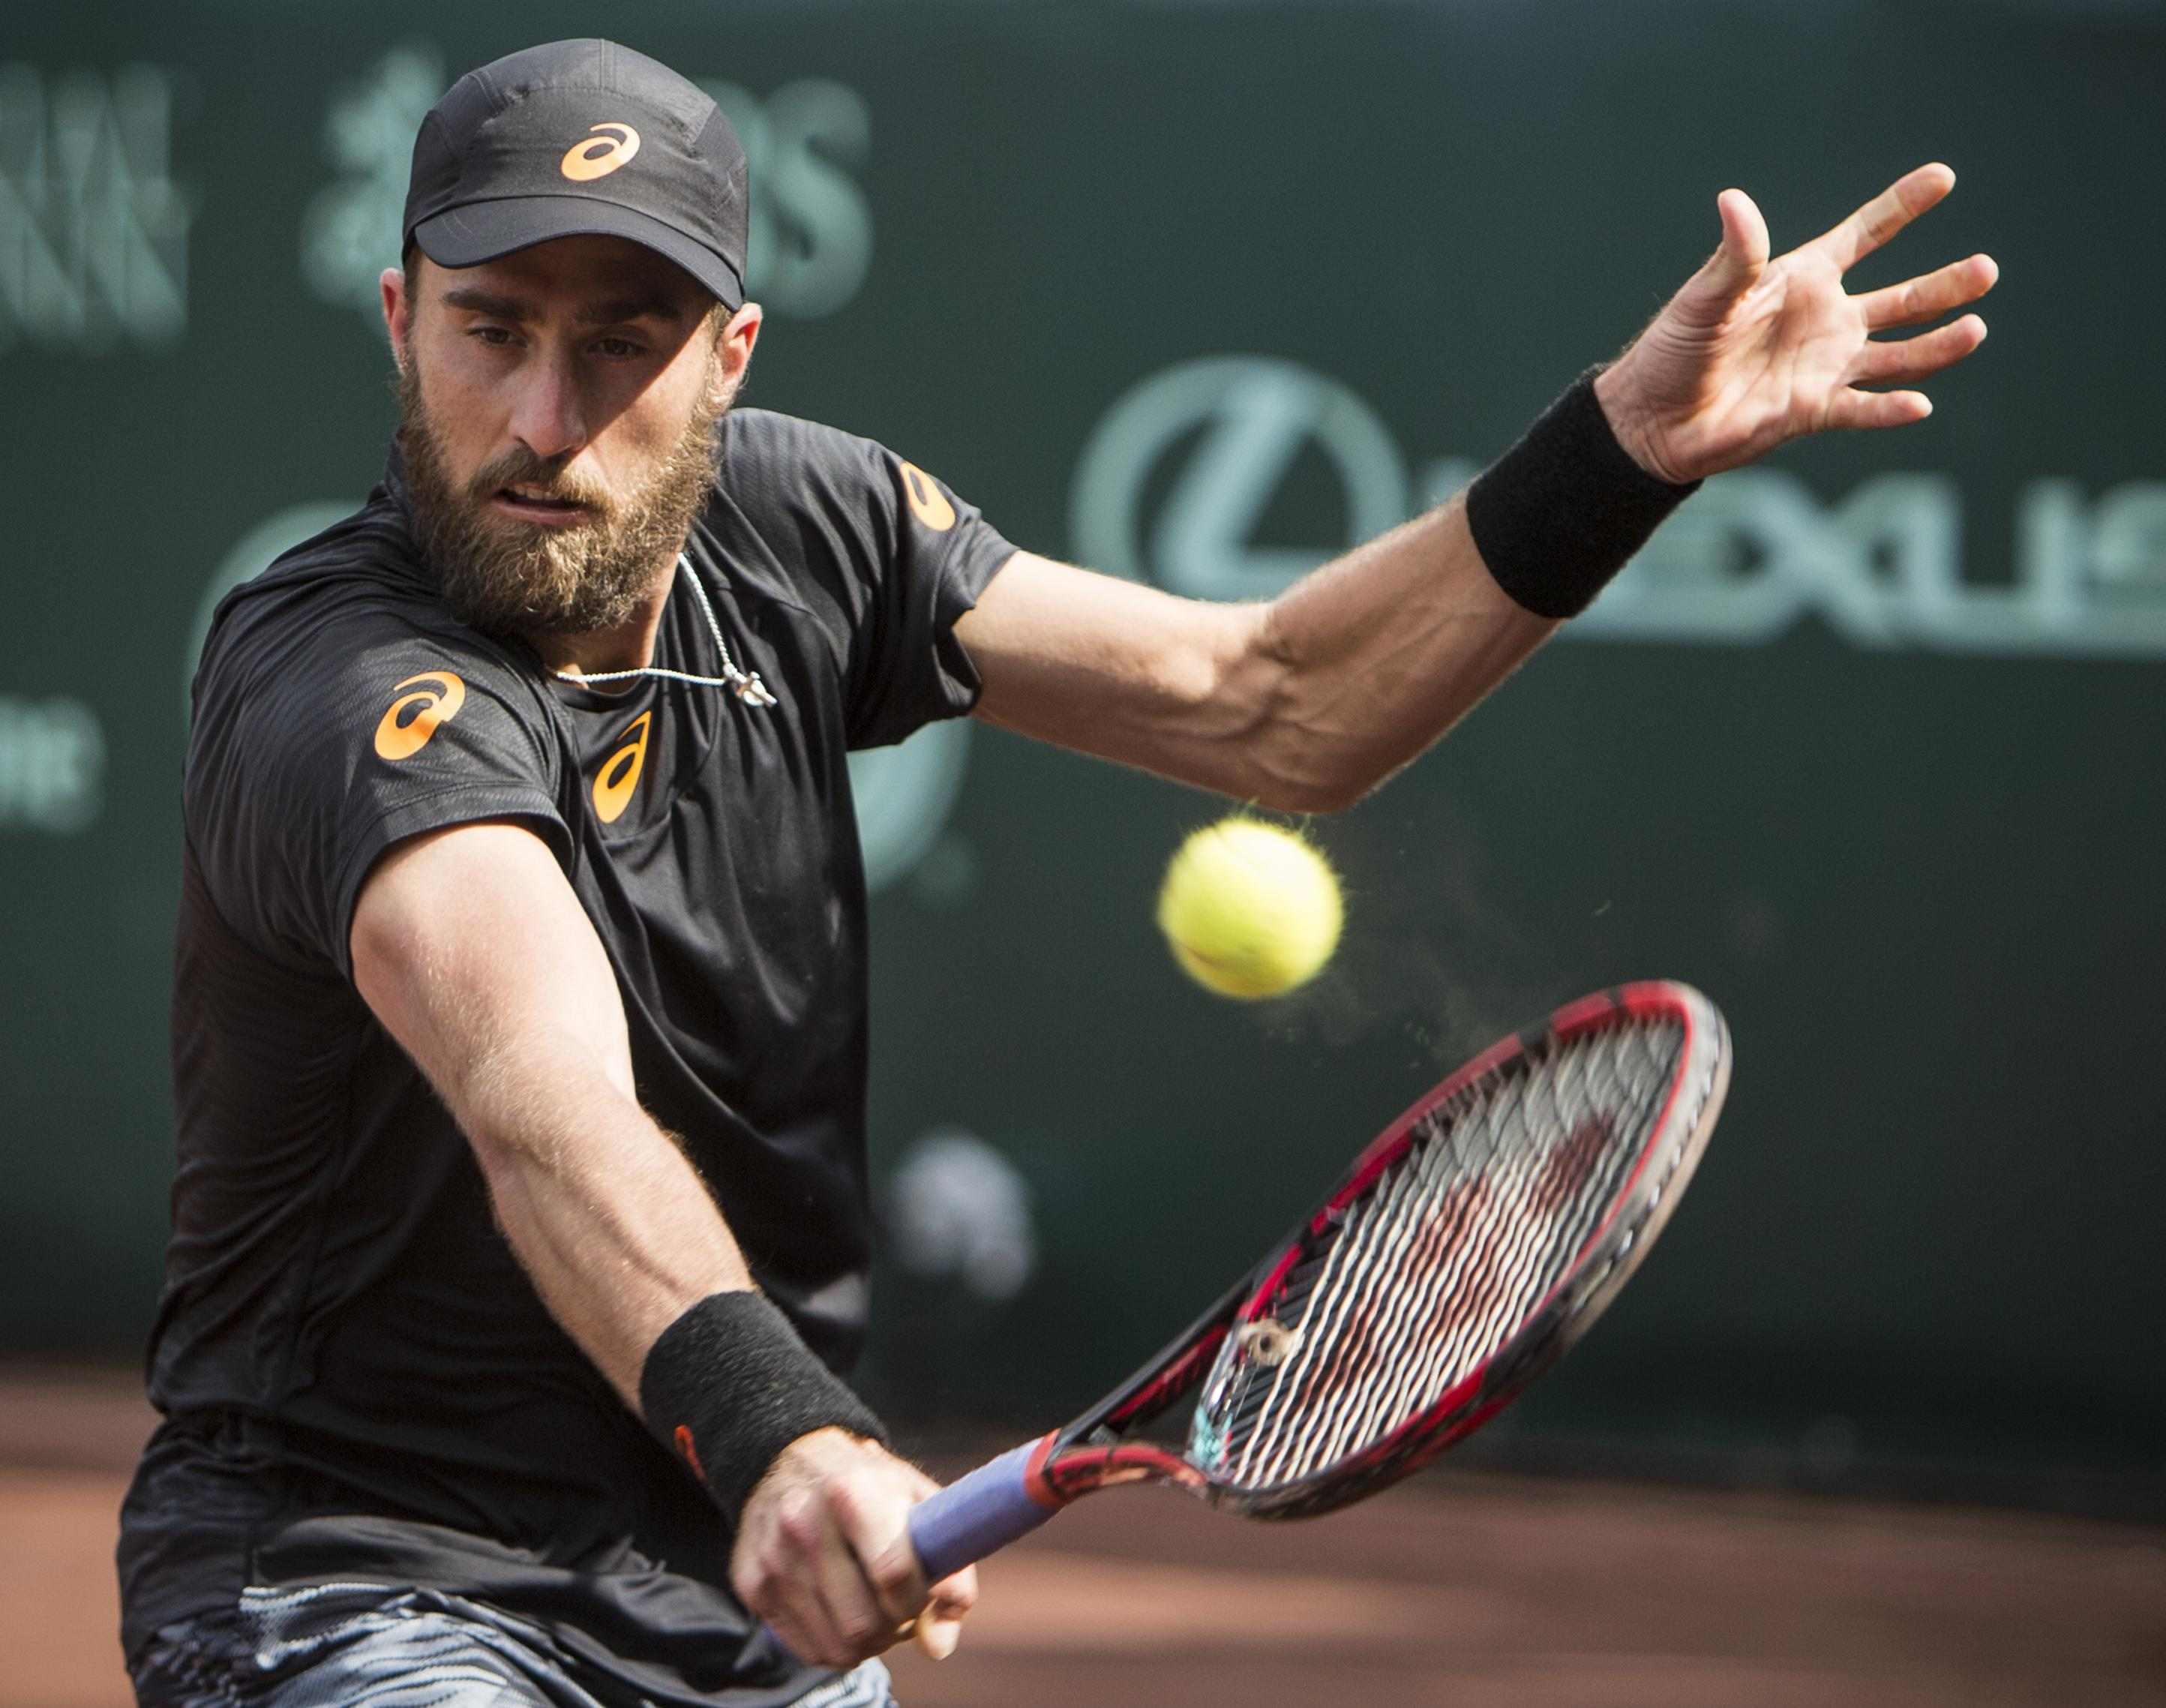 Steve Johnson wins U S Men s Clay Court Championship